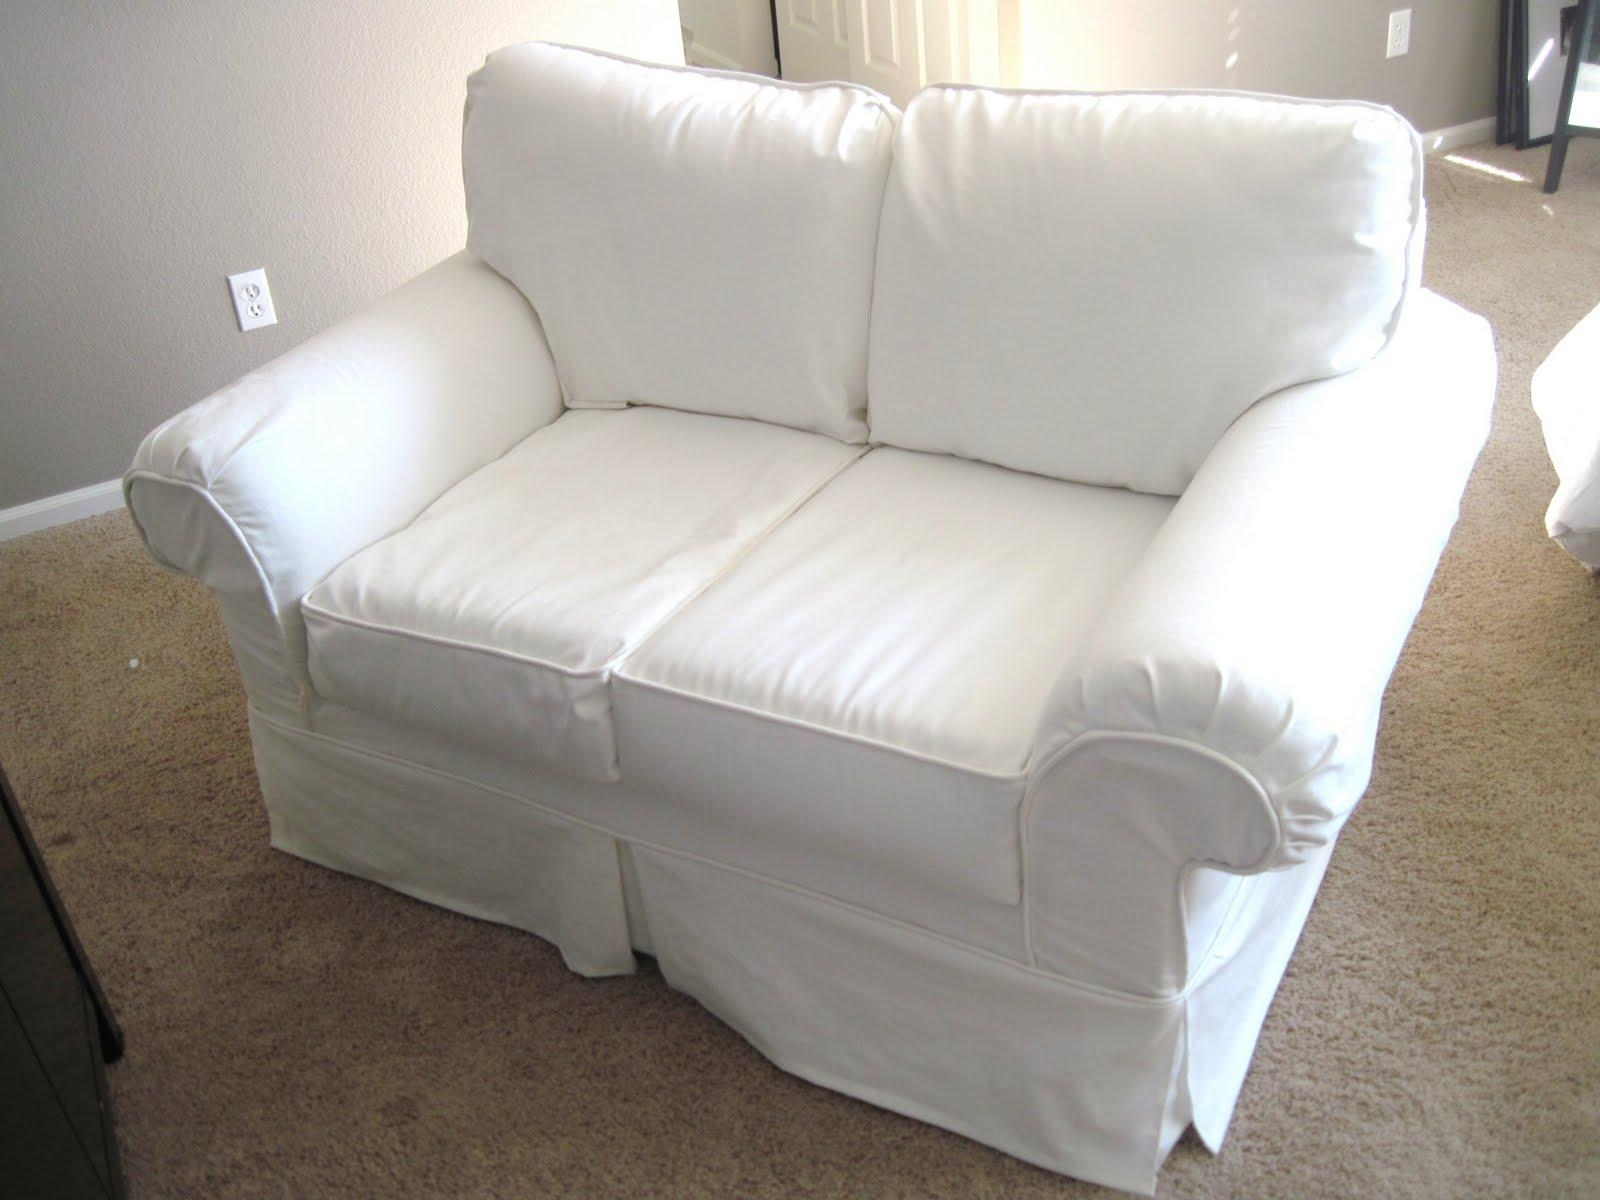 Furniture: Couch Covers At Walmart To Make Your Furniture Stylish With Regard To Slipcovers For Sofas And Chairs (View 8 of 20)